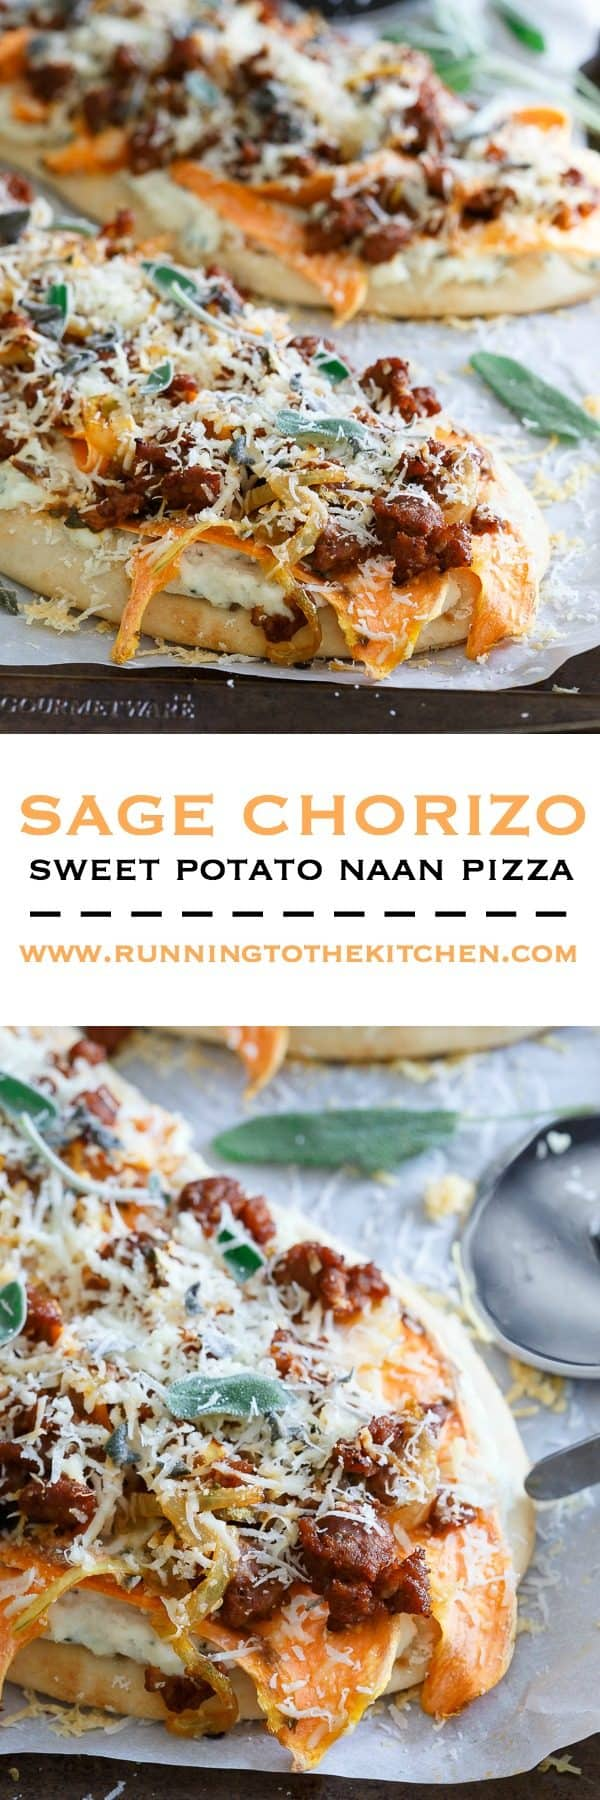 There's so much savory goodness in every bite of this sage chorizo sweet potato naan pizza. It's pizza heaven!